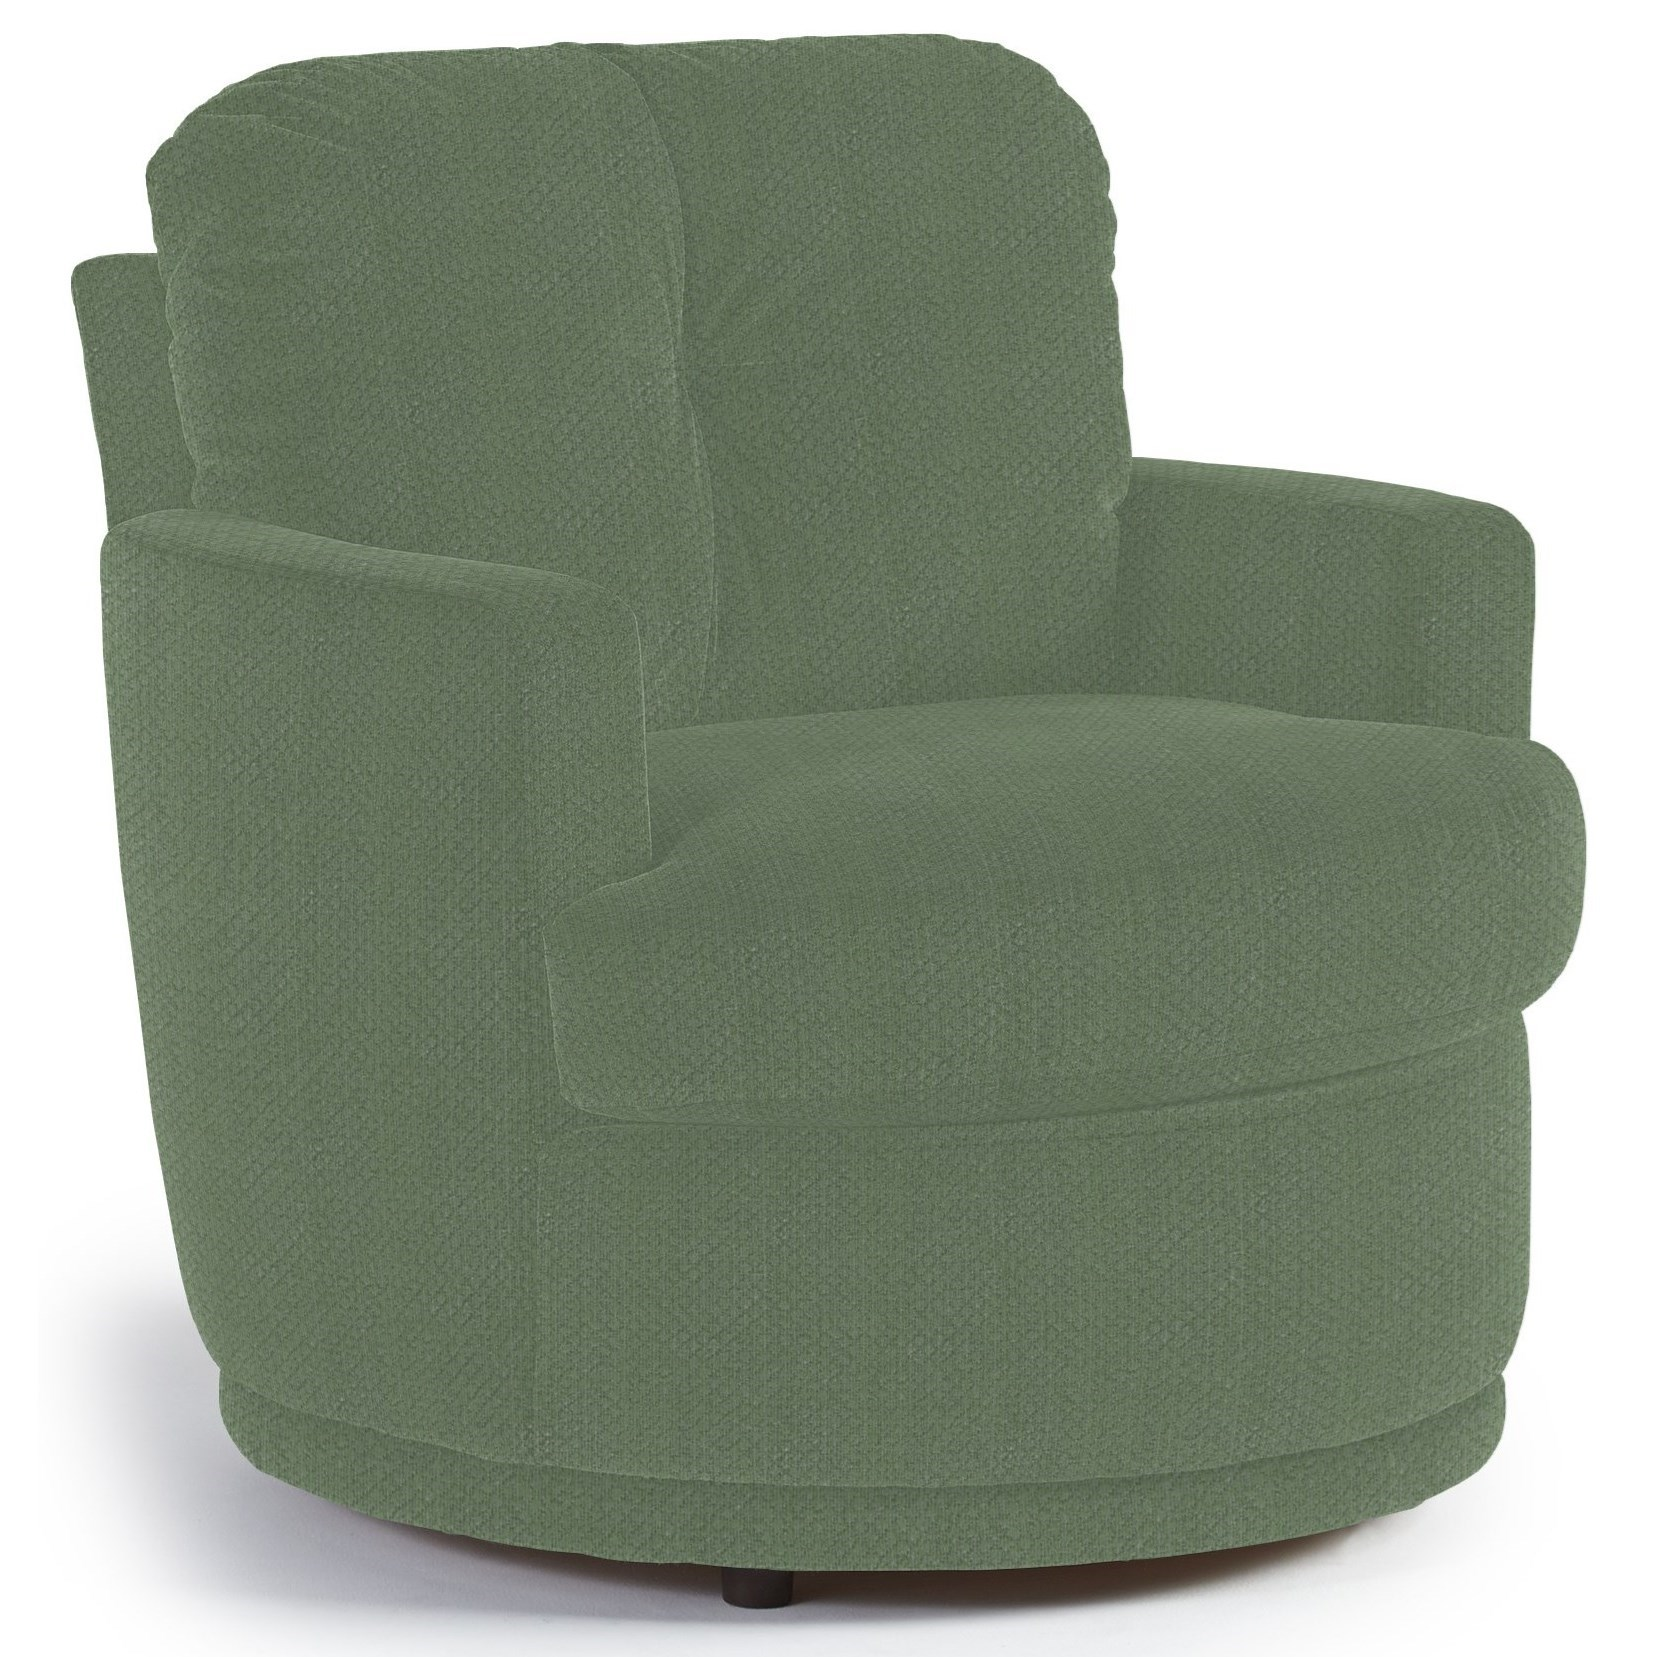 Chairs - Swivel Barrel Swivel Chair by Best Home Furnishings at Rooms and Rest